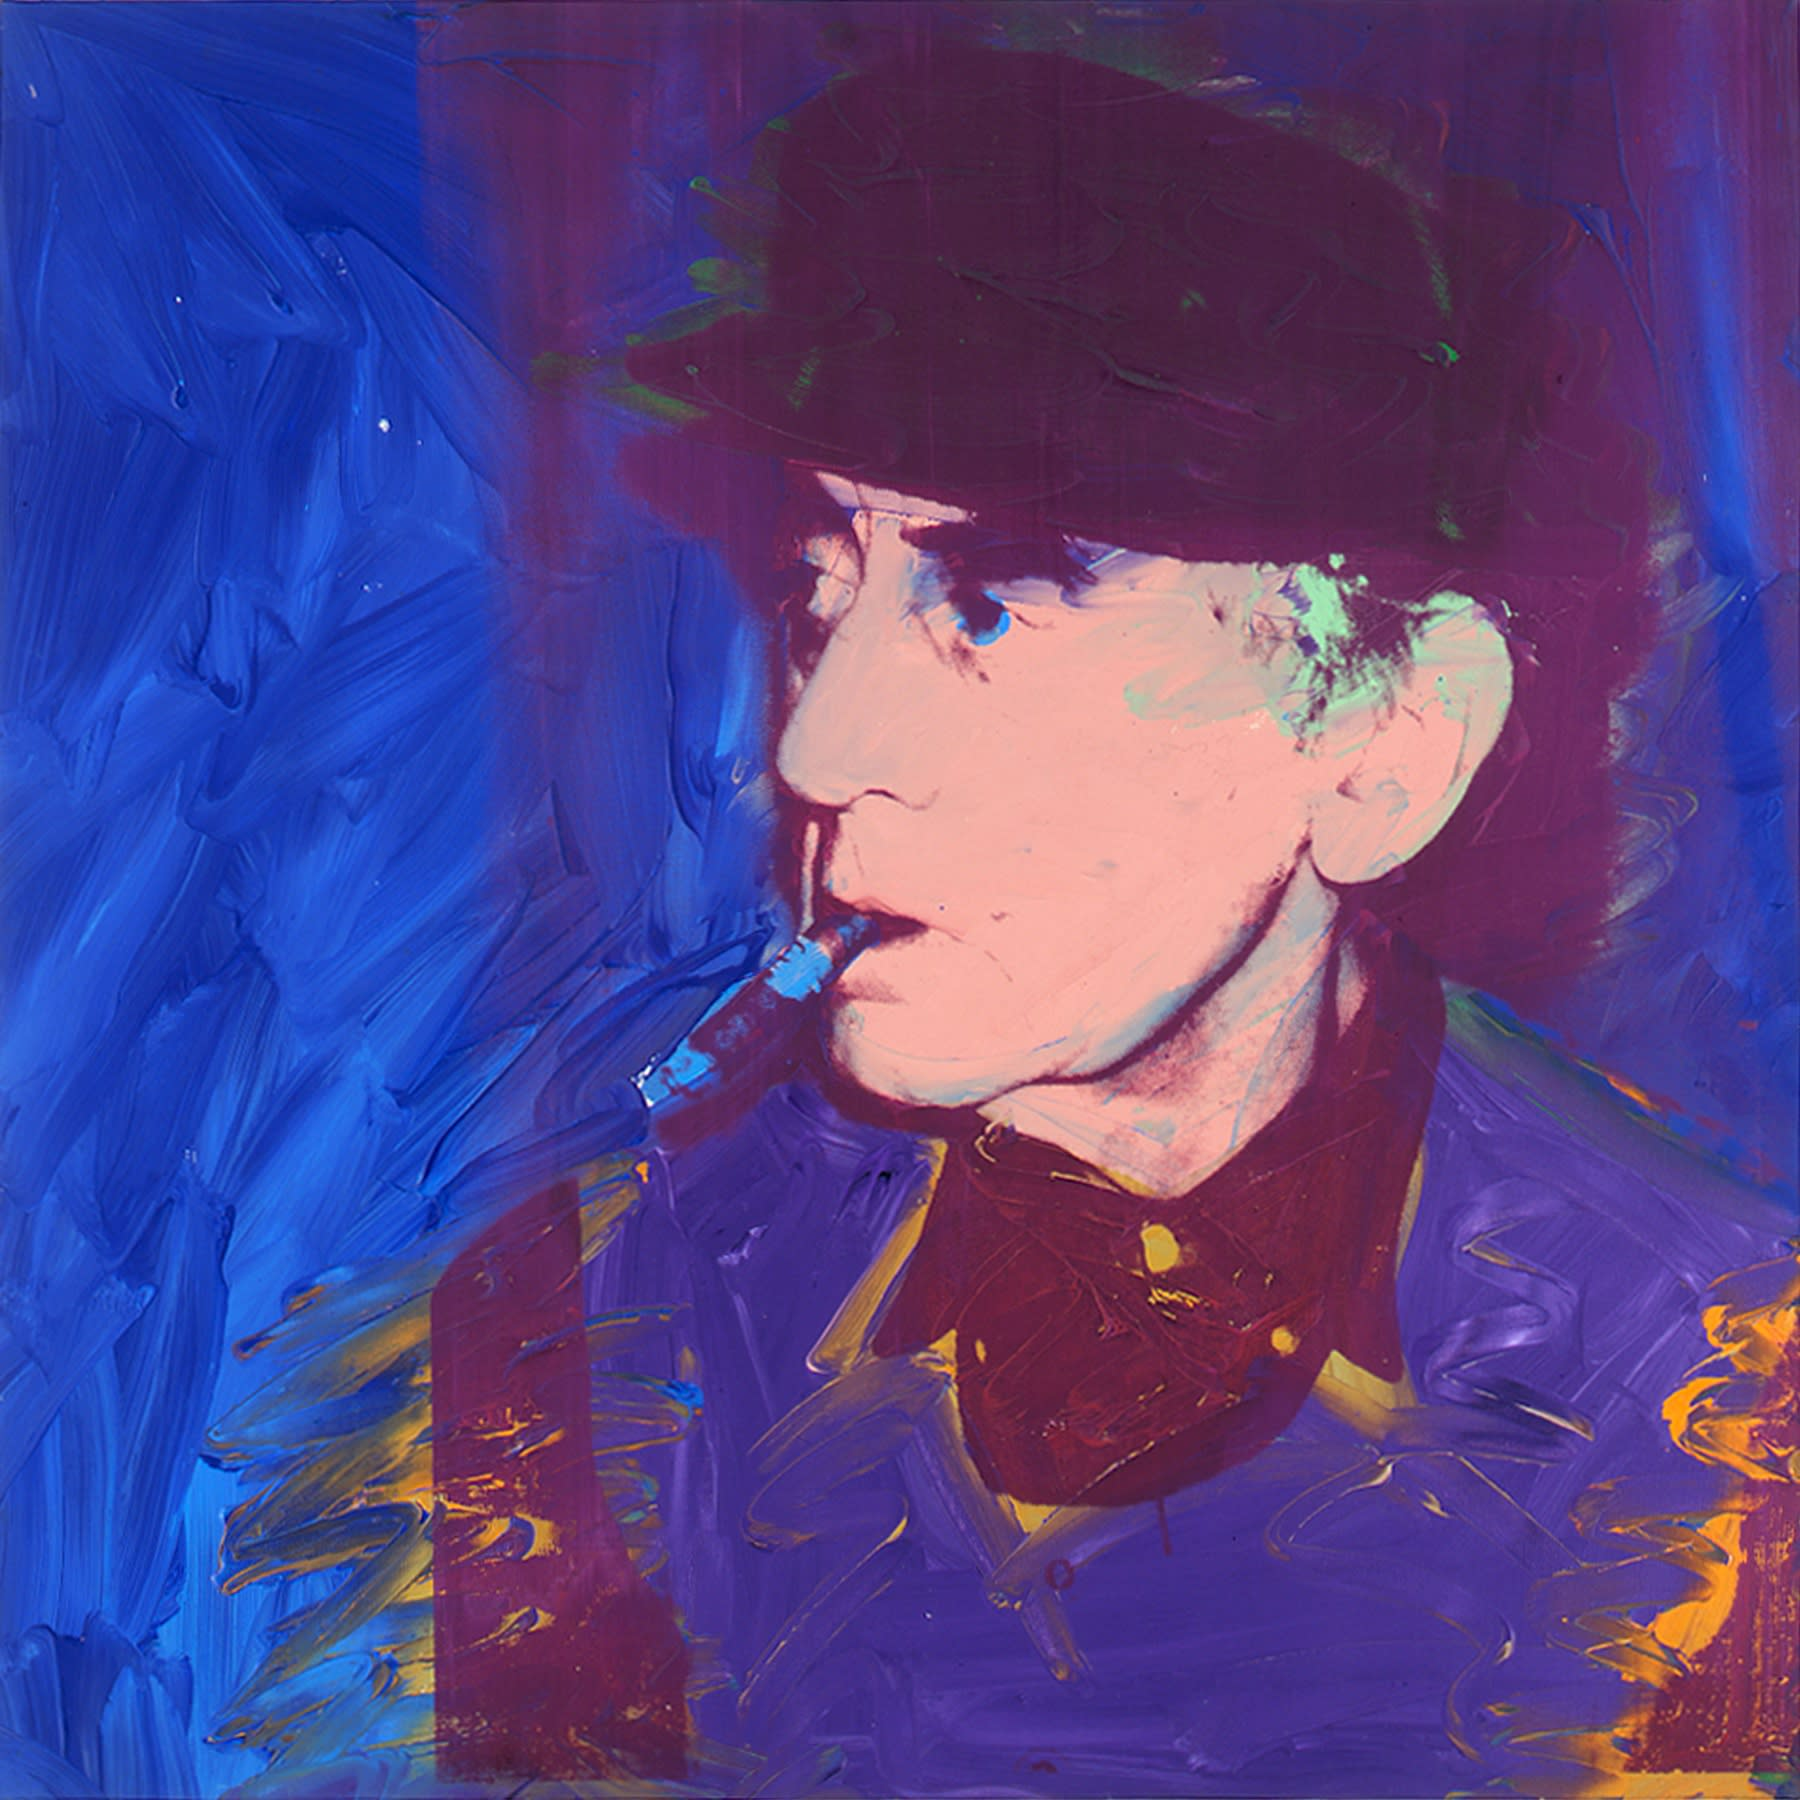 """<span class=""""link fancybox-details-link""""><a href=""""/artists/247-andy-warhol/works/11068-andy-warhol-man-ray-1974/"""">View Detail Page</a></span><div class=""""artist""""><span class=""""artist""""><strong>ANDY WARHOL</strong></span></div><div class=""""title""""><em>Man Ray</em>, 1974</div><div class=""""signed_and_dated"""">Signed and dated 1974 on the overlap</div><div class=""""medium"""">Acrylic and silkscreen on canvas</div><div class=""""dimensions"""">101.6 x 101.6 cm<br /> 40 x 40 inches</div>"""